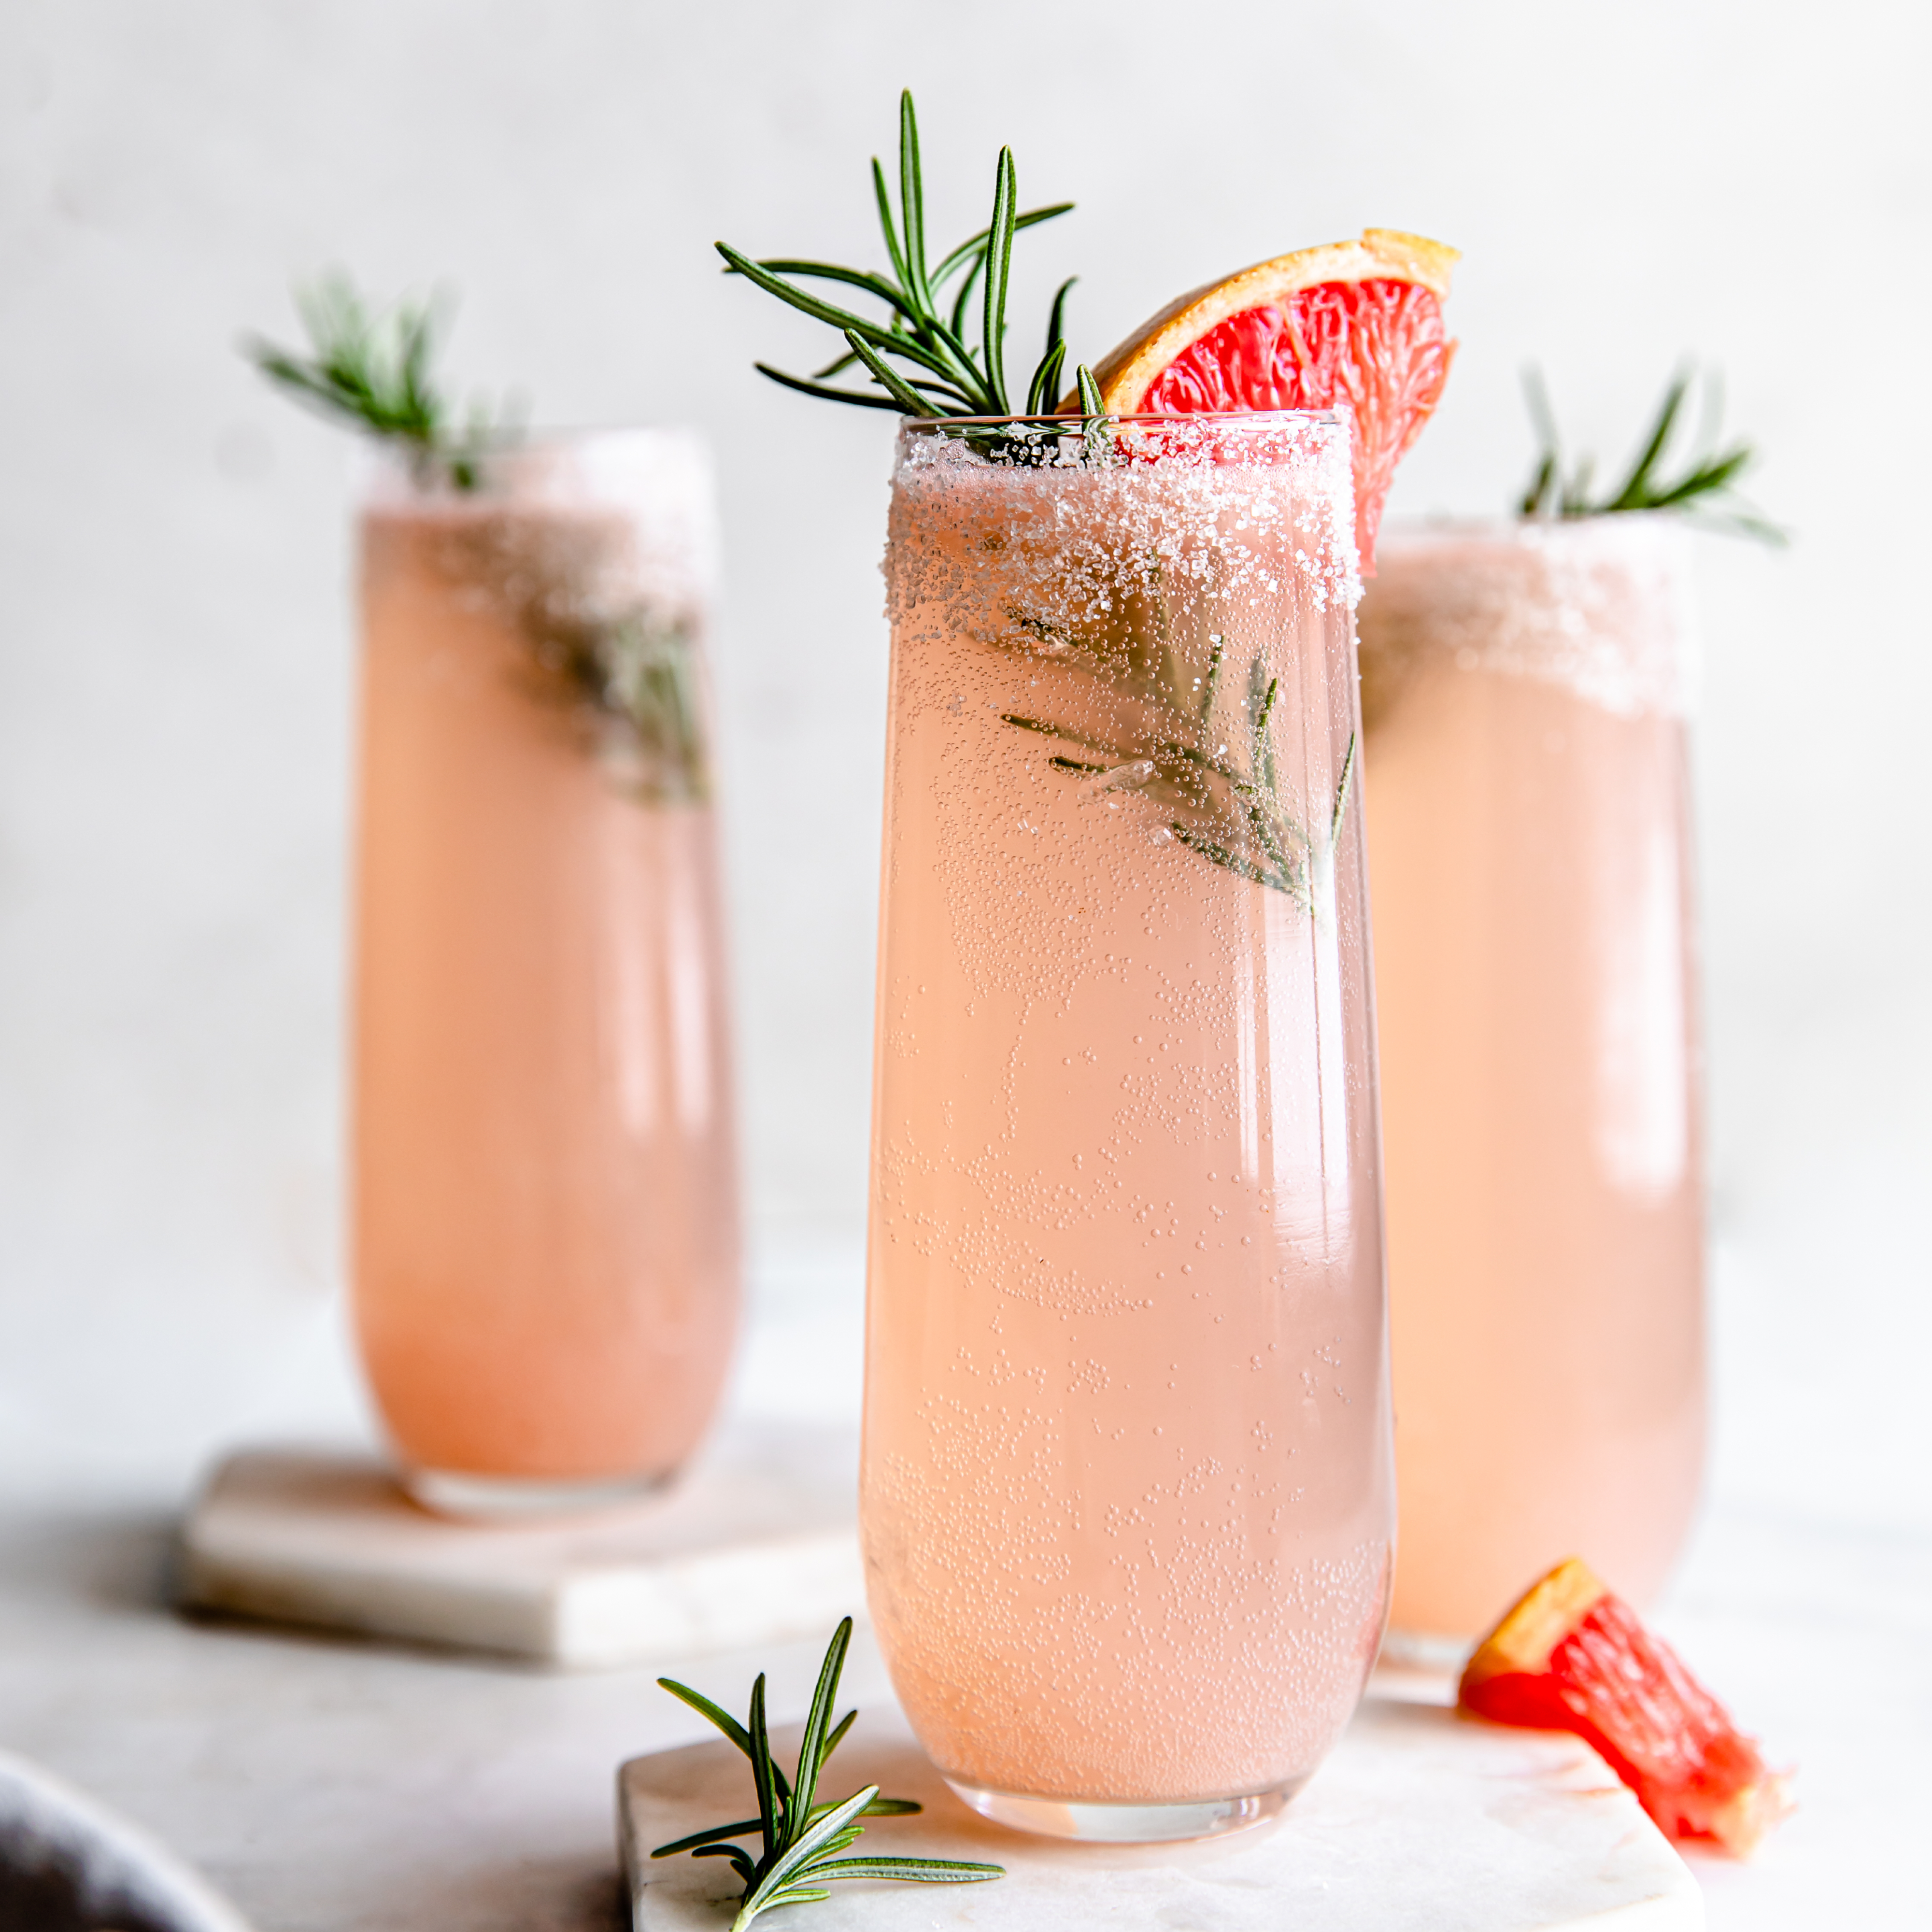 glasses of Grapefruit Cocktail made with an almond cow